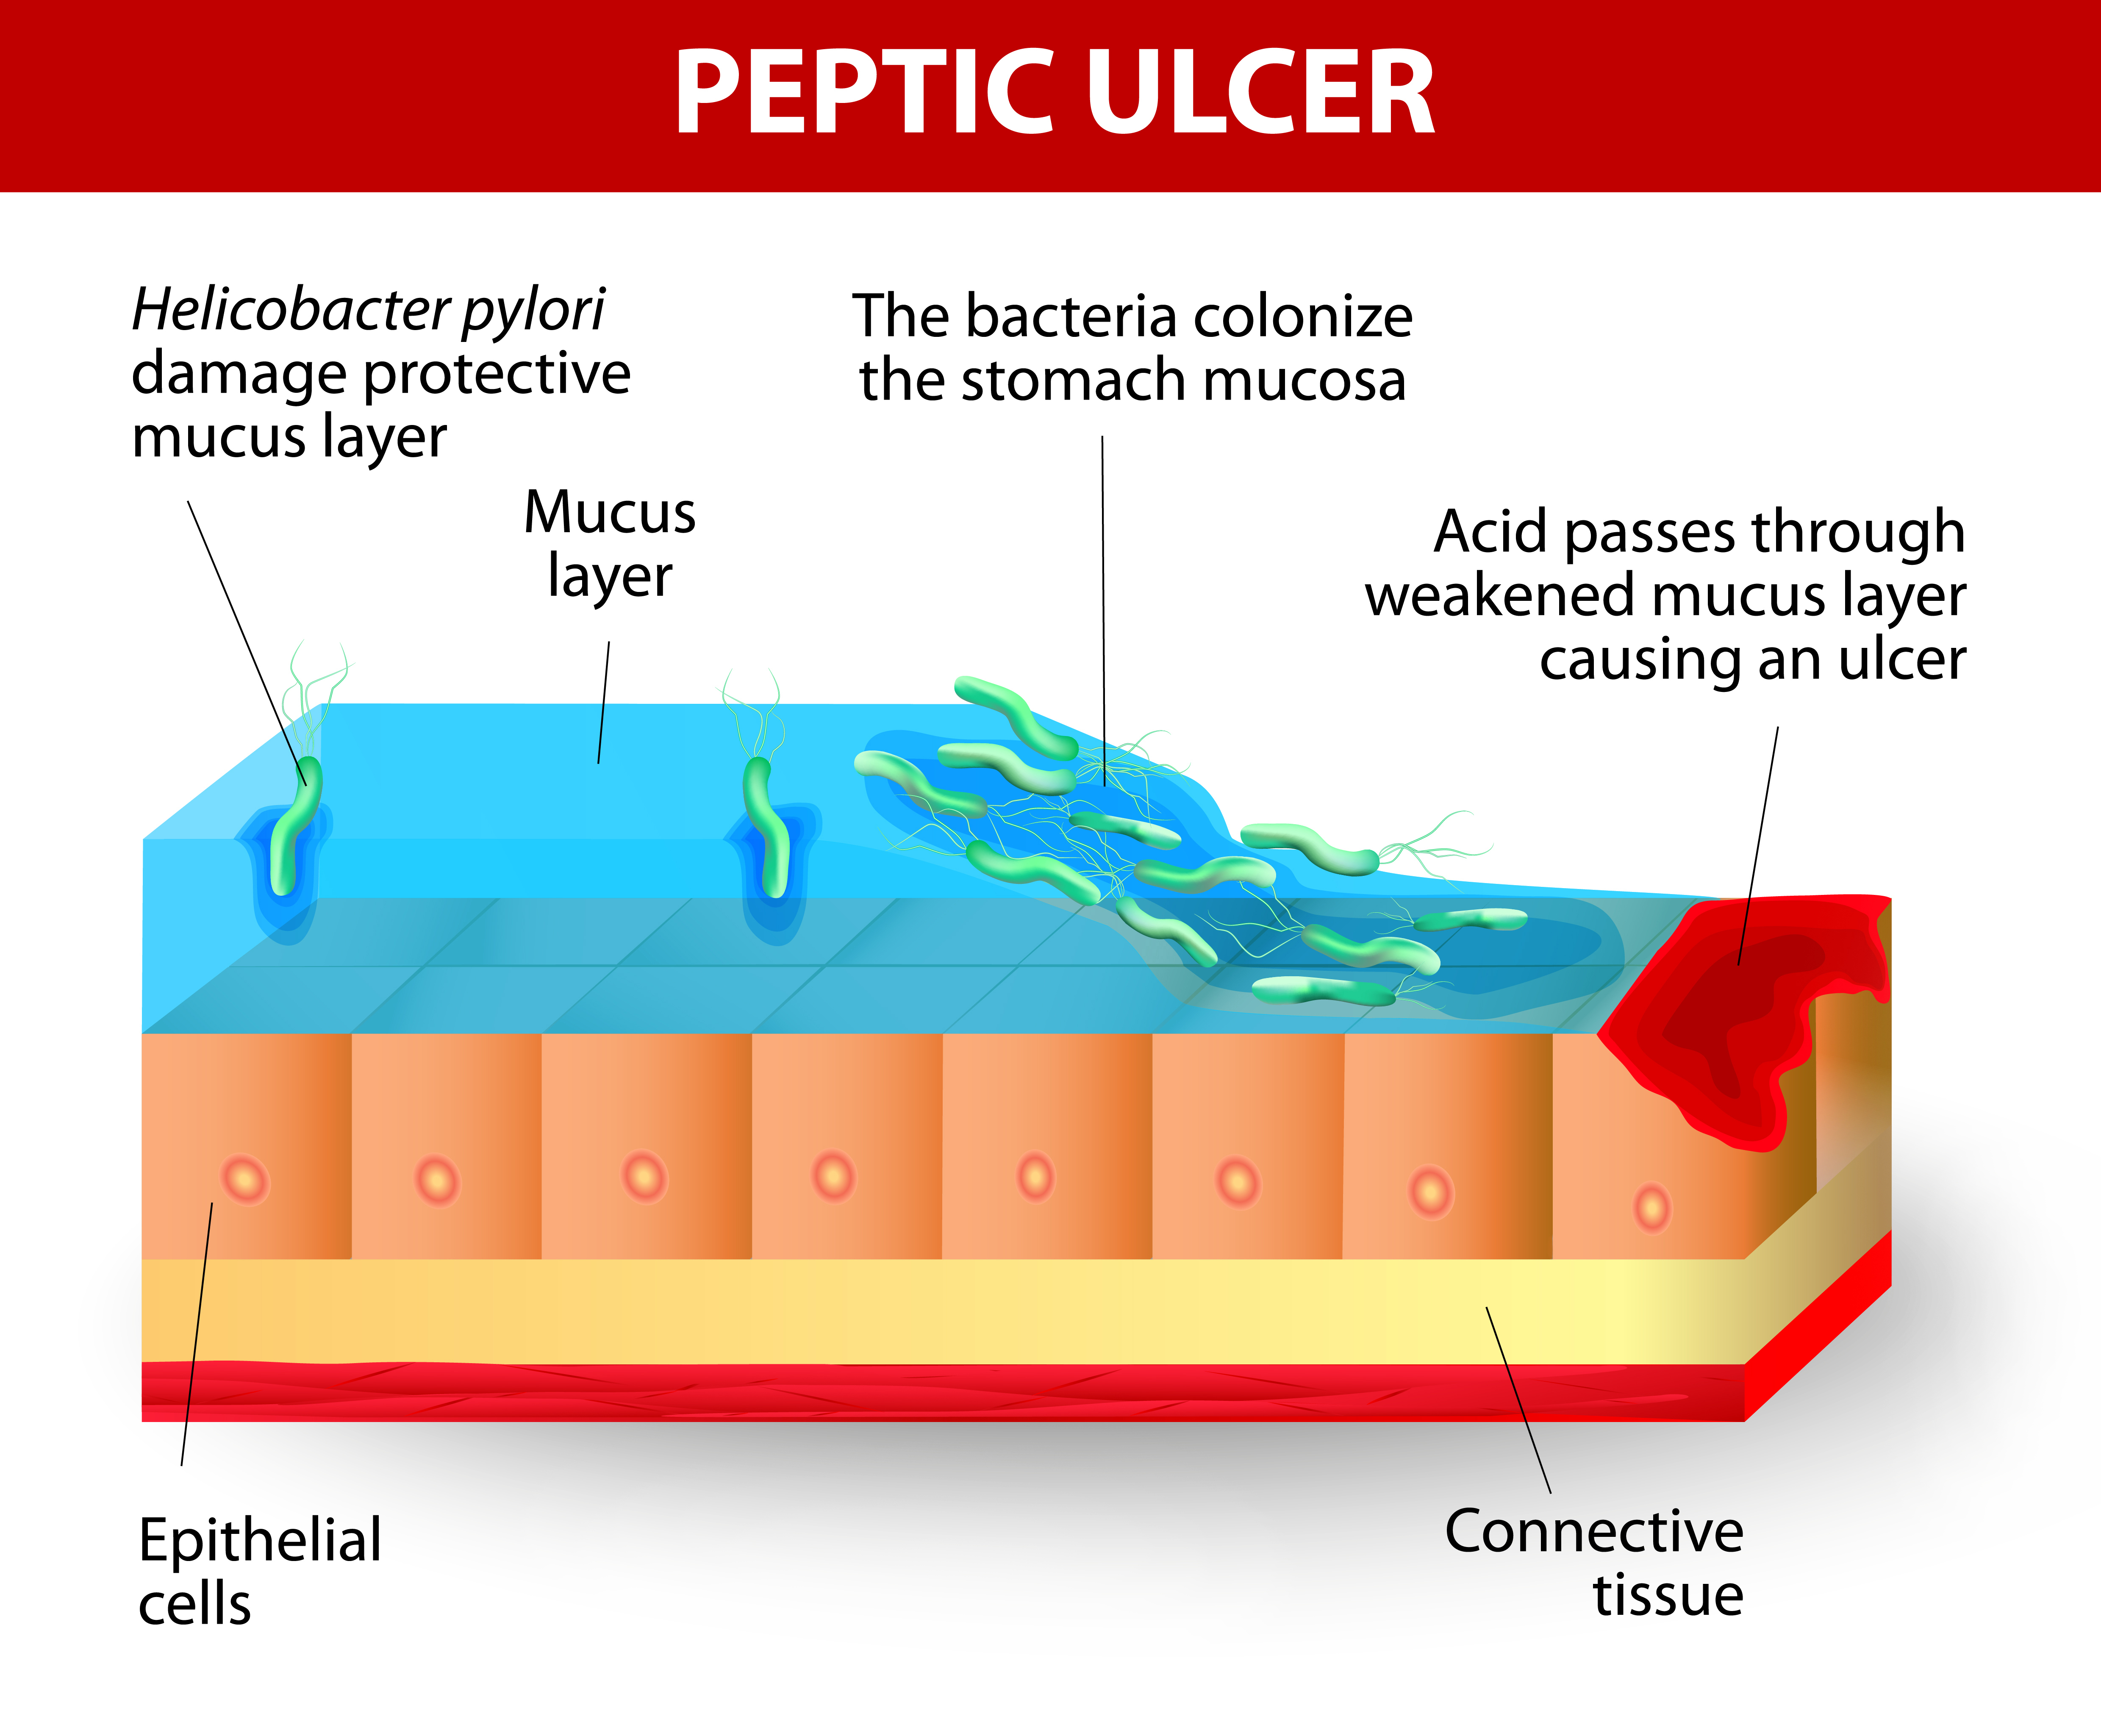 peptic ulcer disease A peptic ulcer is a break in the lining of the stomach, extending through the muscularis mucosae to the deeper layers of the bowel wall whilst they may technically appear anywhere in the gastrointestinal tract, they are most often located on the lesser curvature of the proximal stomach or the first part of the duodenum.